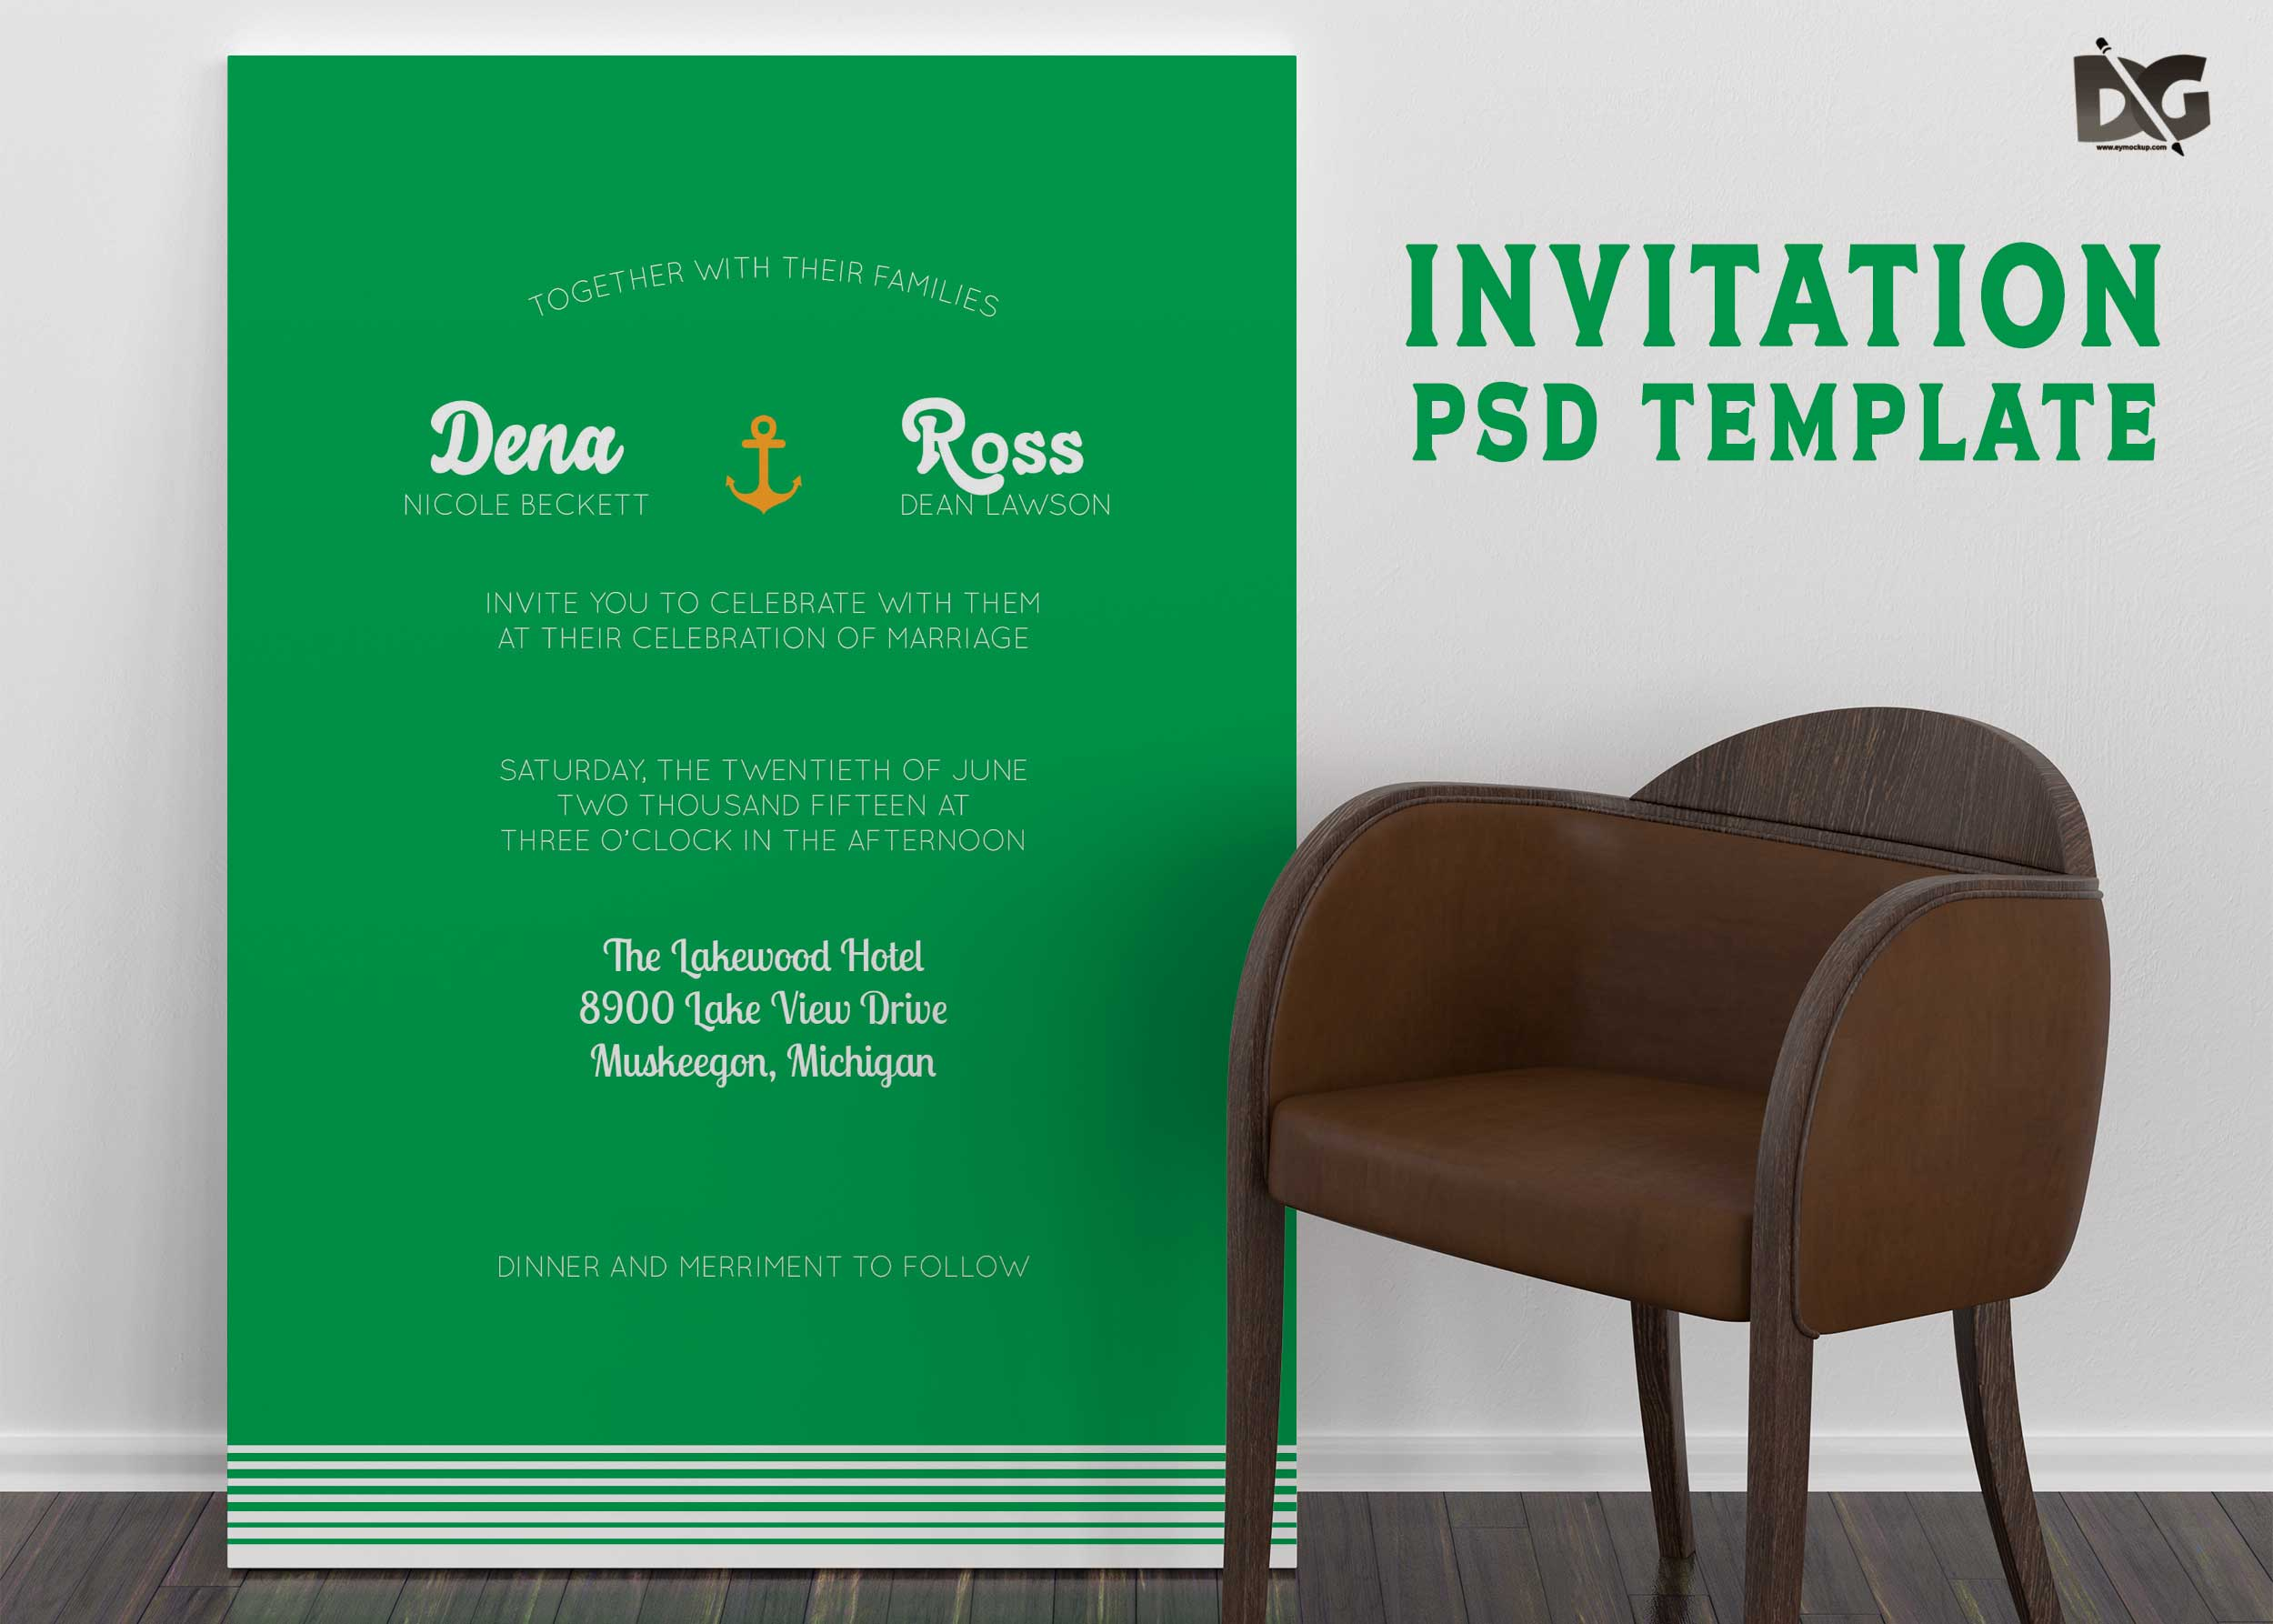 Free wedding invitation psd template psd design resources free wedding invitation psd template stopboris Images